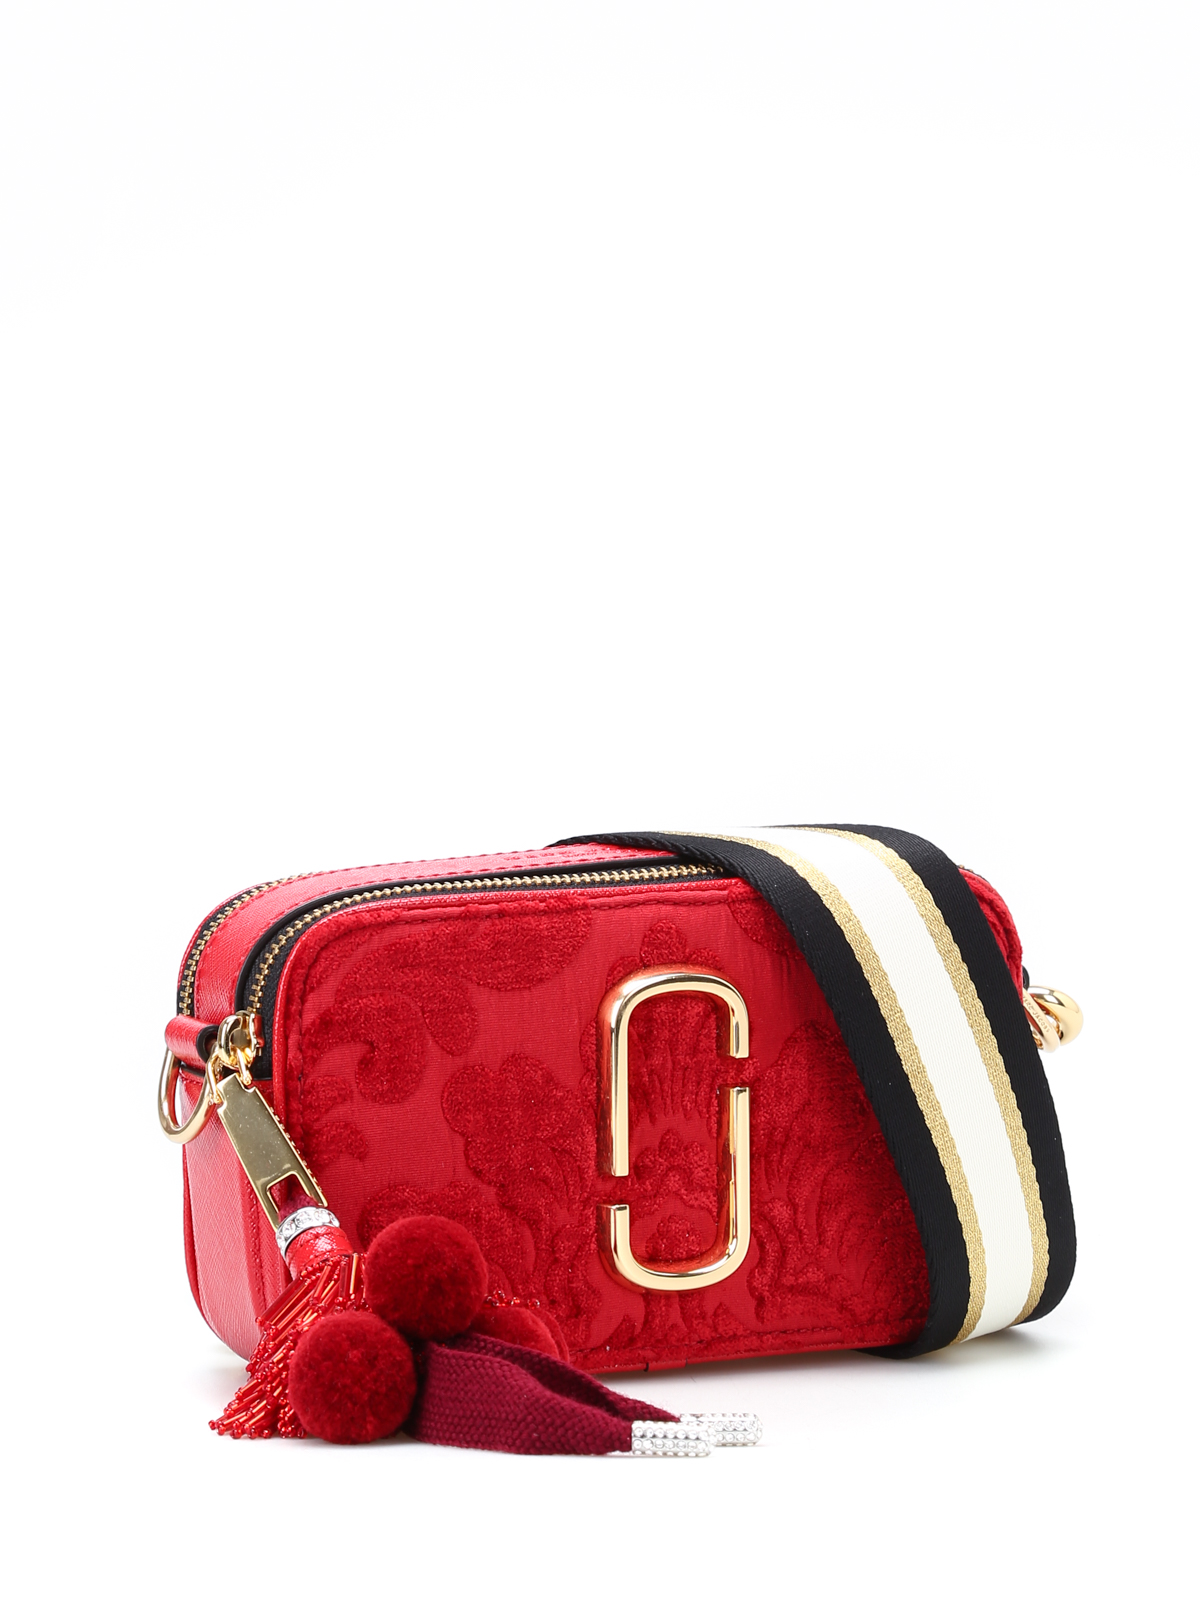 Damask Snapshot Small Camera Bag By Marc Jacobs Cross Body Bags Shop Online At Ikrix Com